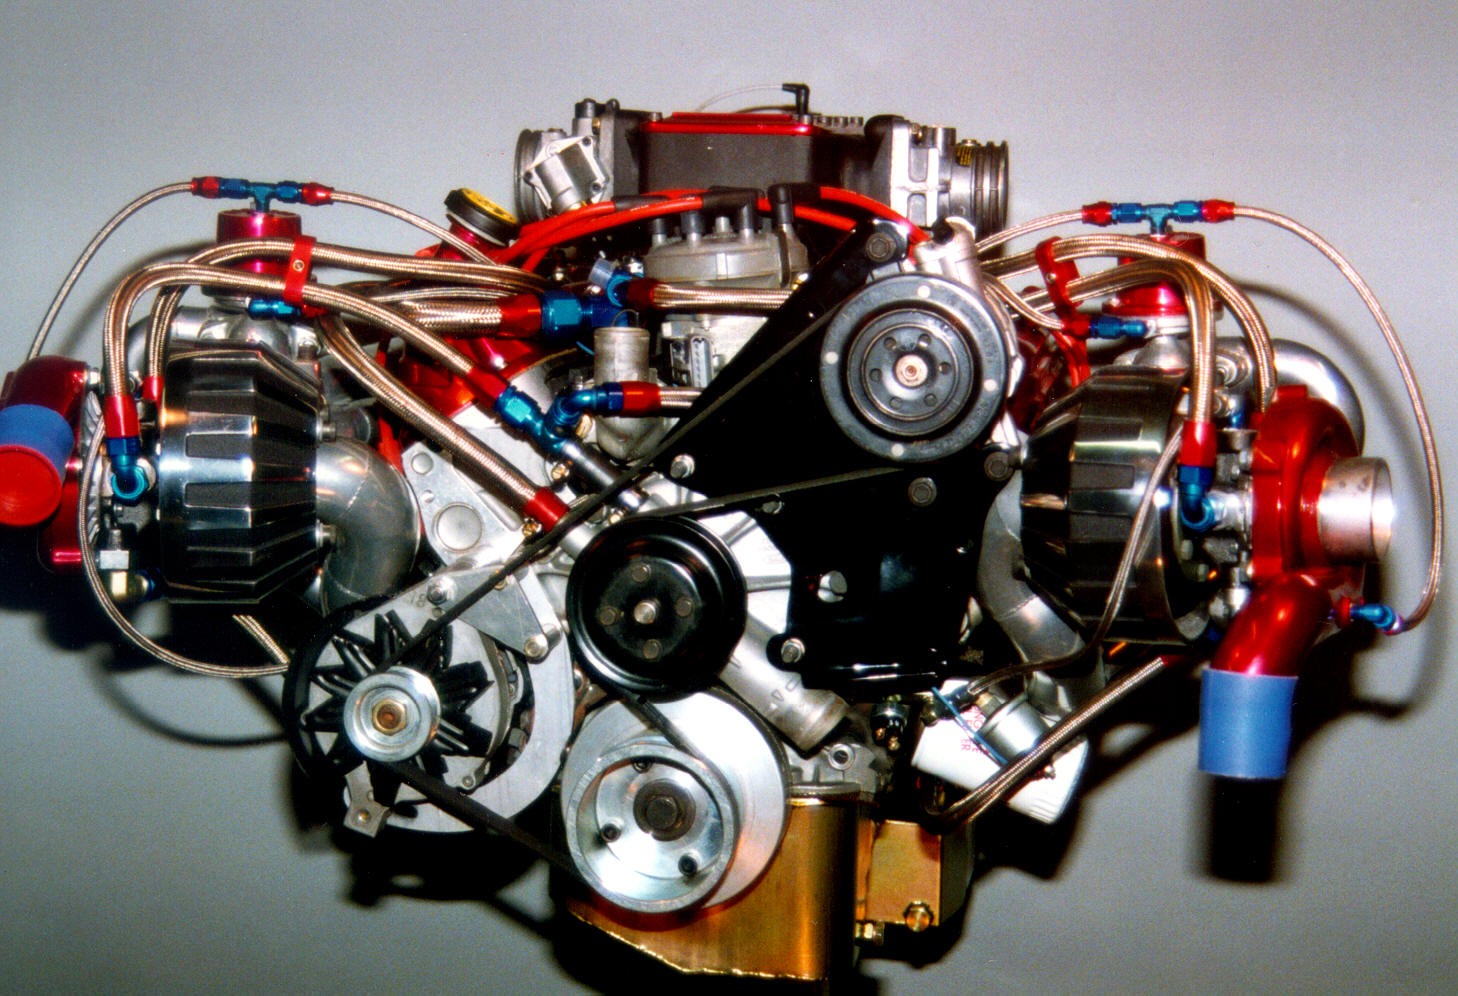 best car engines sushantskoltey 39 s blog On motor for a car